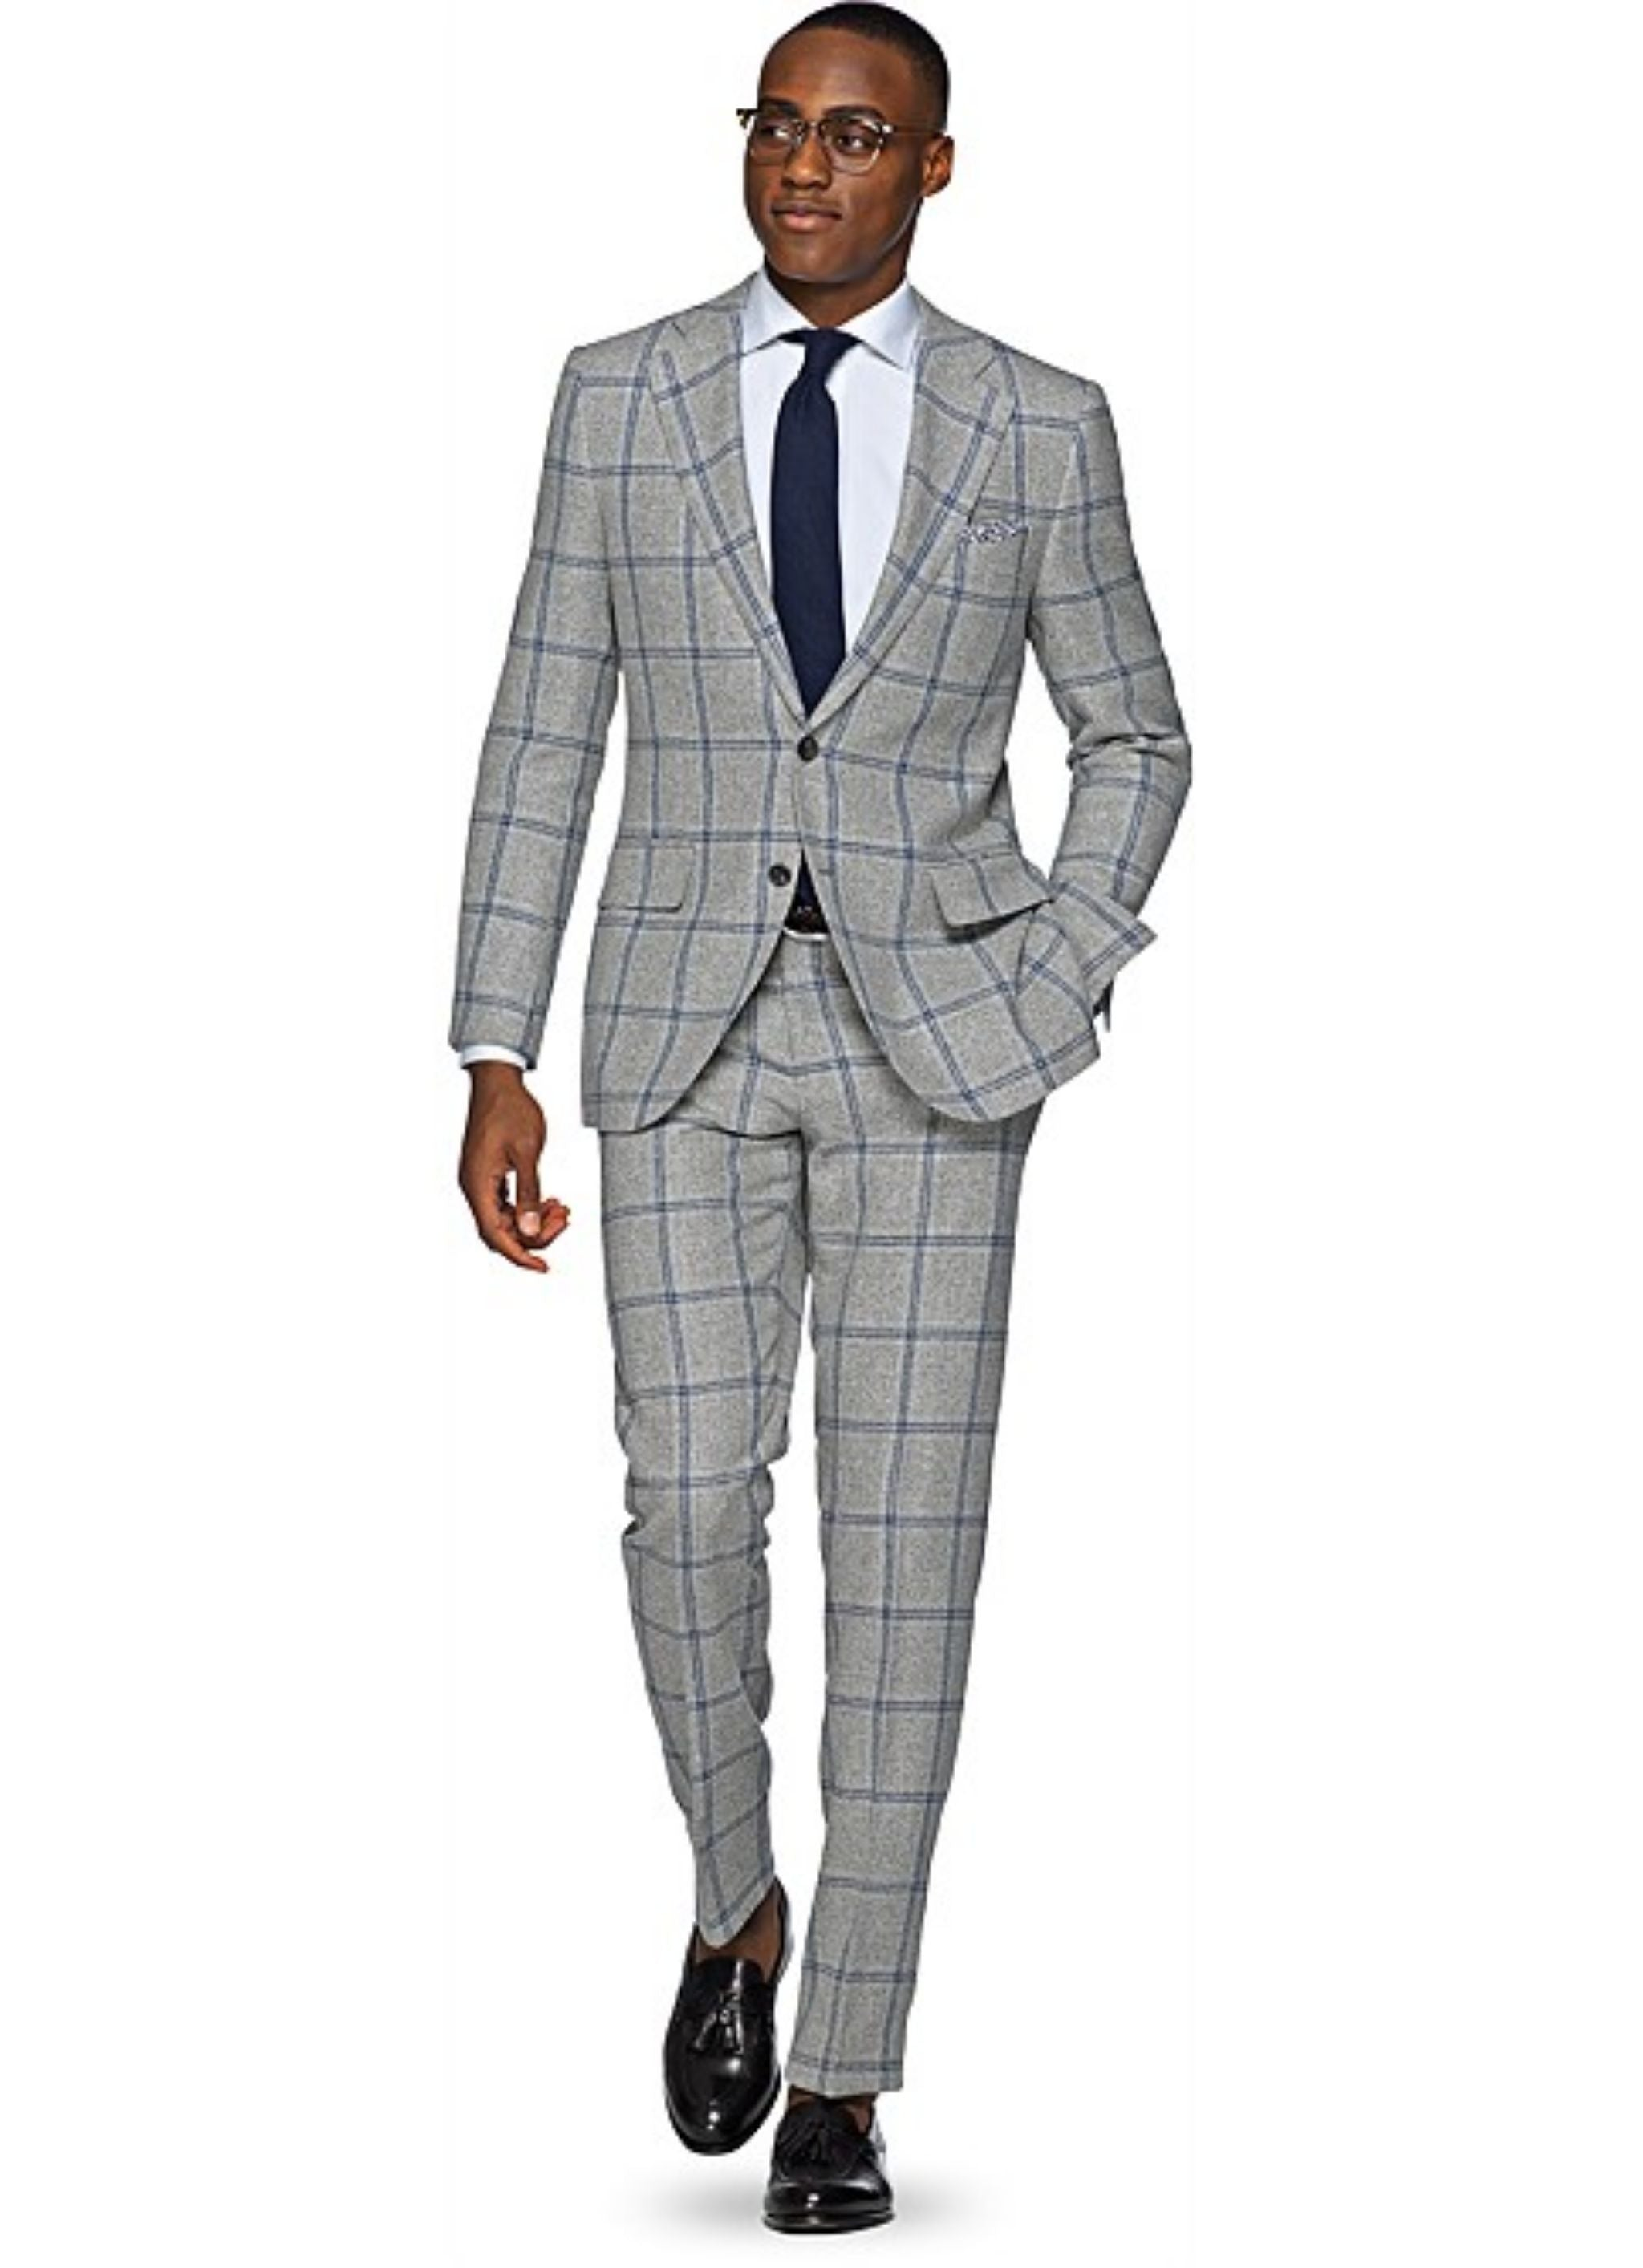 Gray windowpane suit - suitsupply lazio fit with a tie